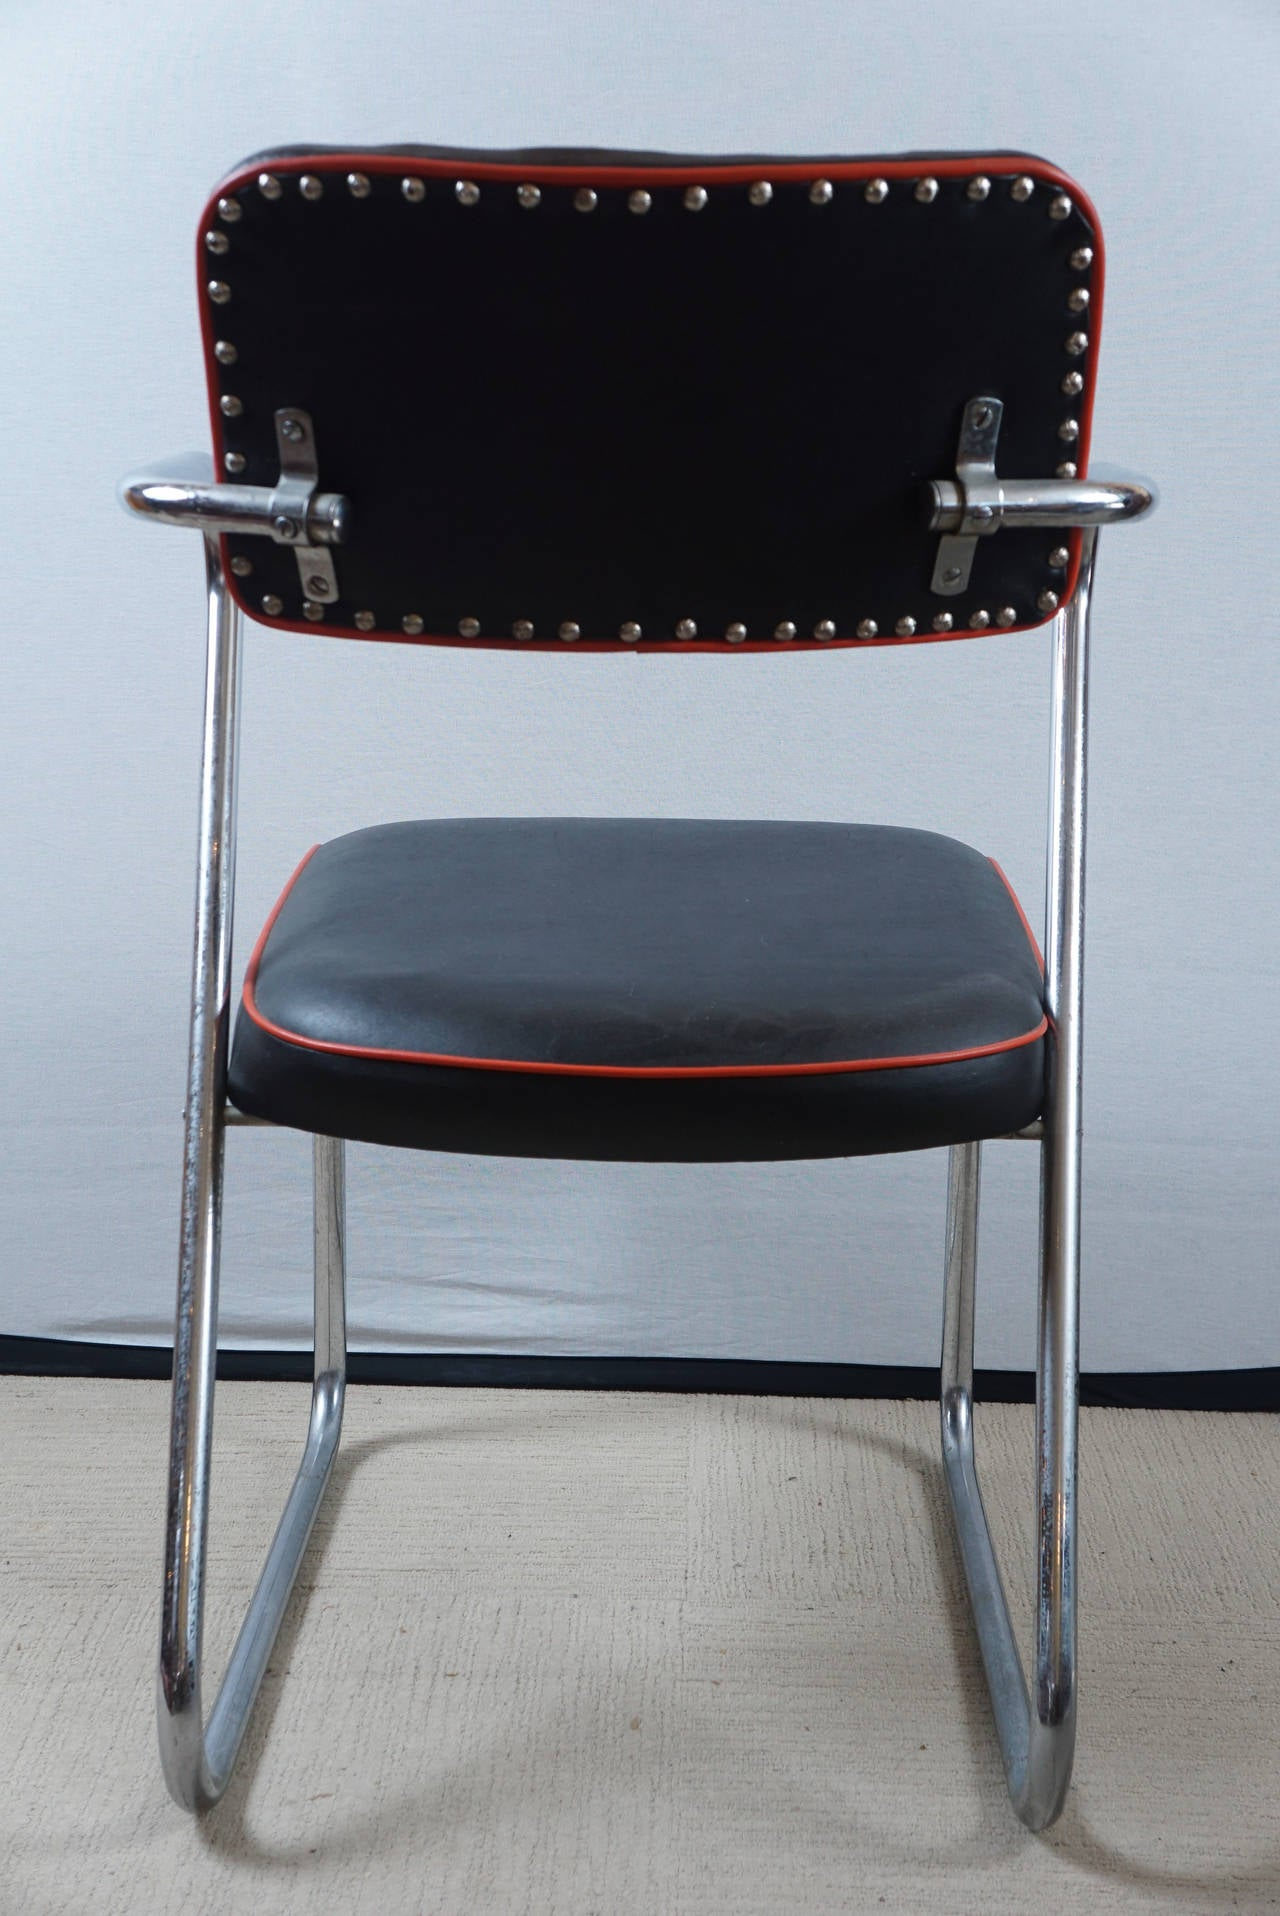 z chair for sale seated yoga poses seniors pair of royalchrome chairs by gilbert rohde royal